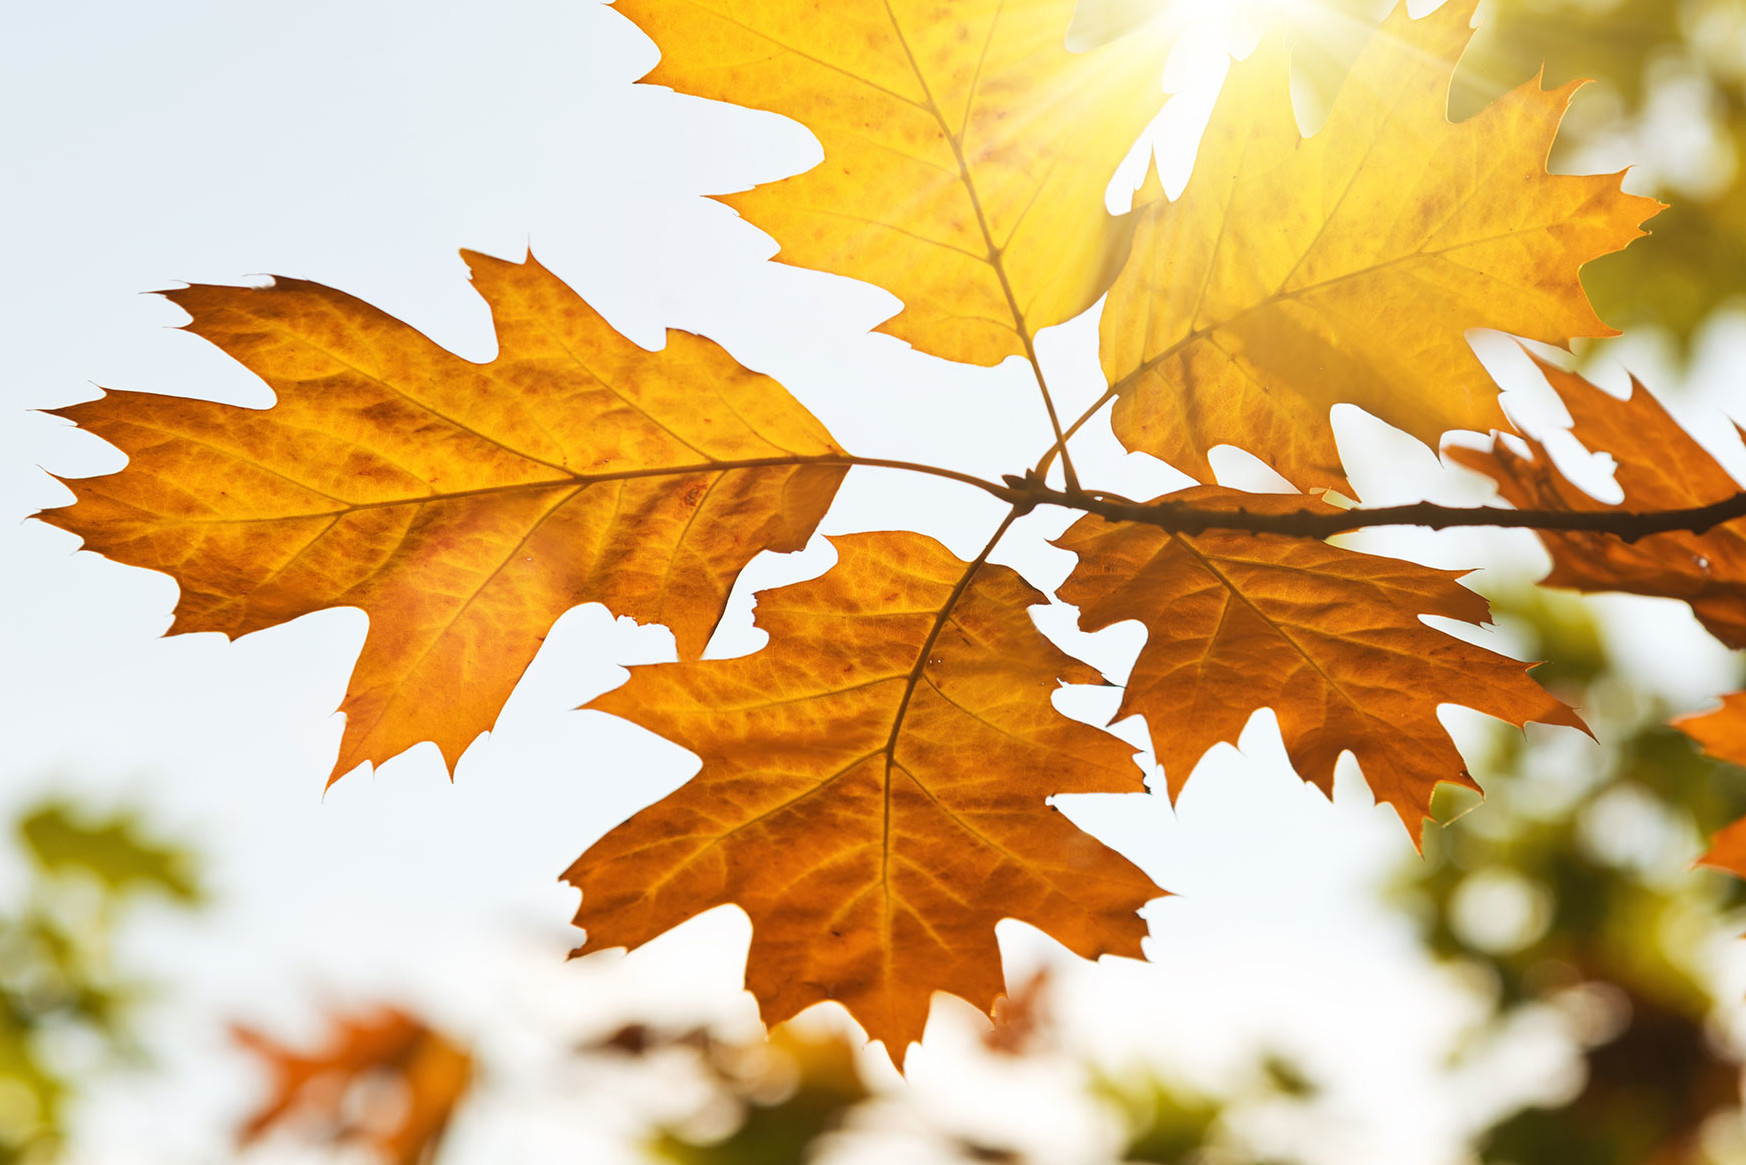 autumn-leaves-in-the-sun-of-light[1]